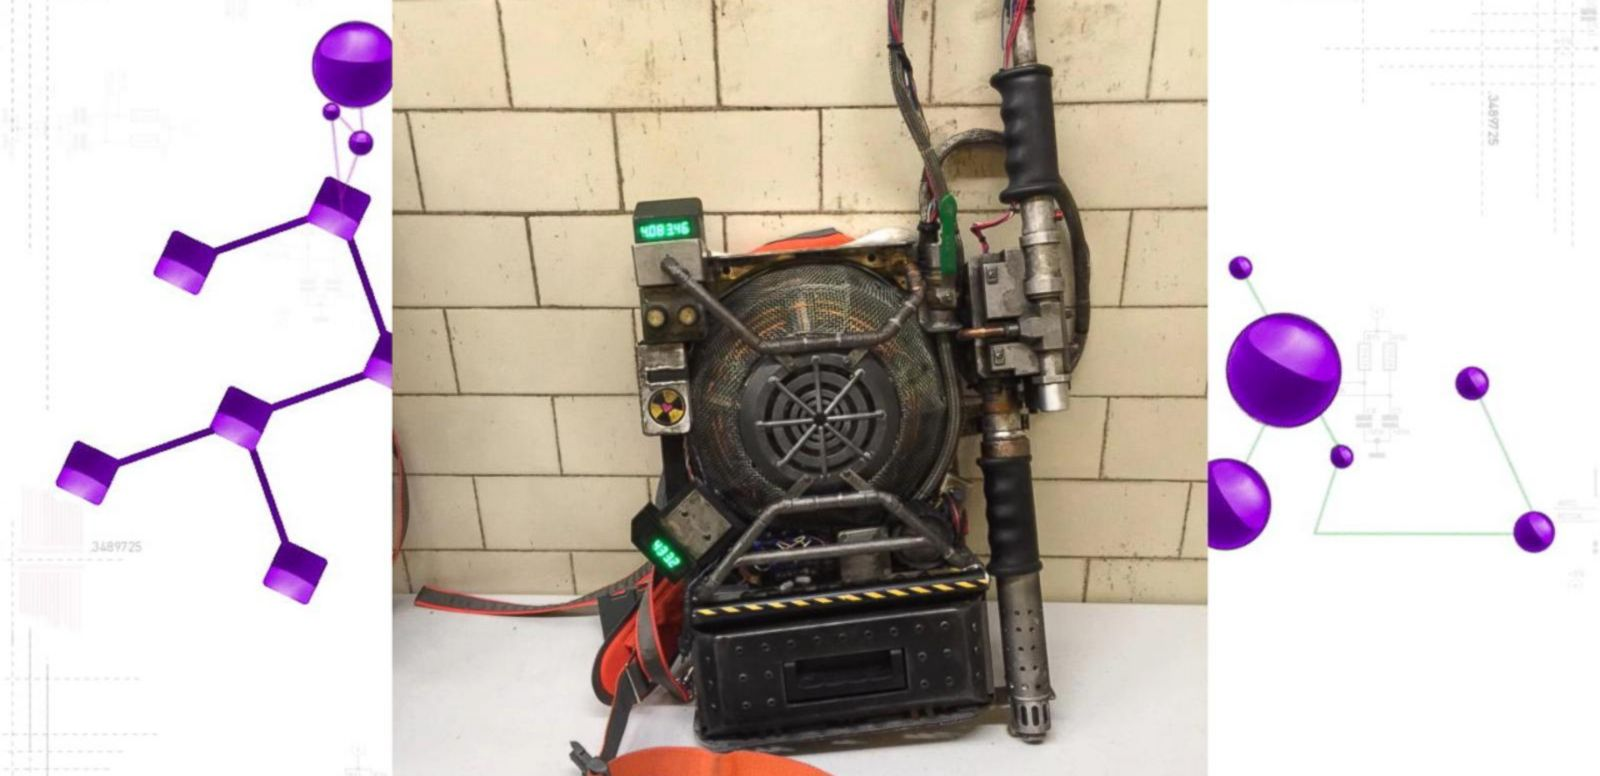 VIDEO: 'Ghostbusters' Director Paul Feig Tweets First Pictures of Costumes